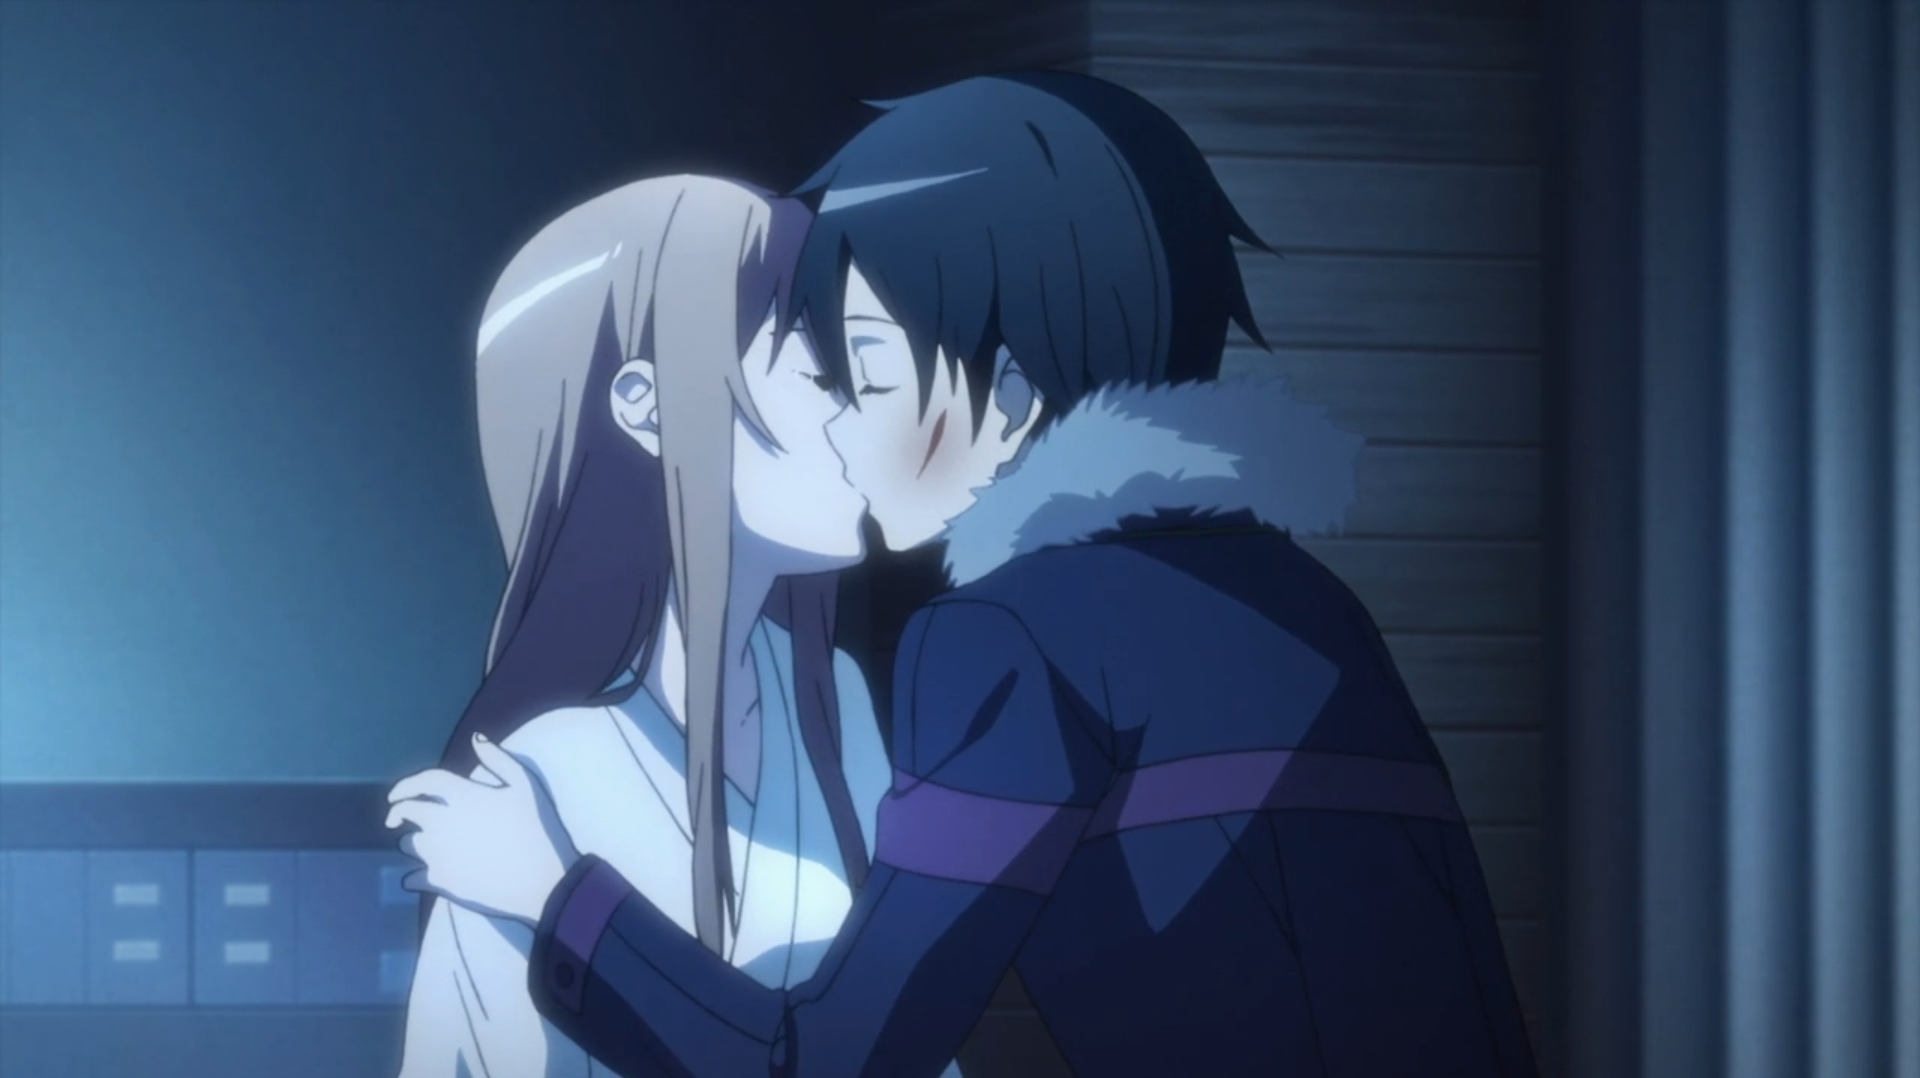 asuna and yuuki relationship questions